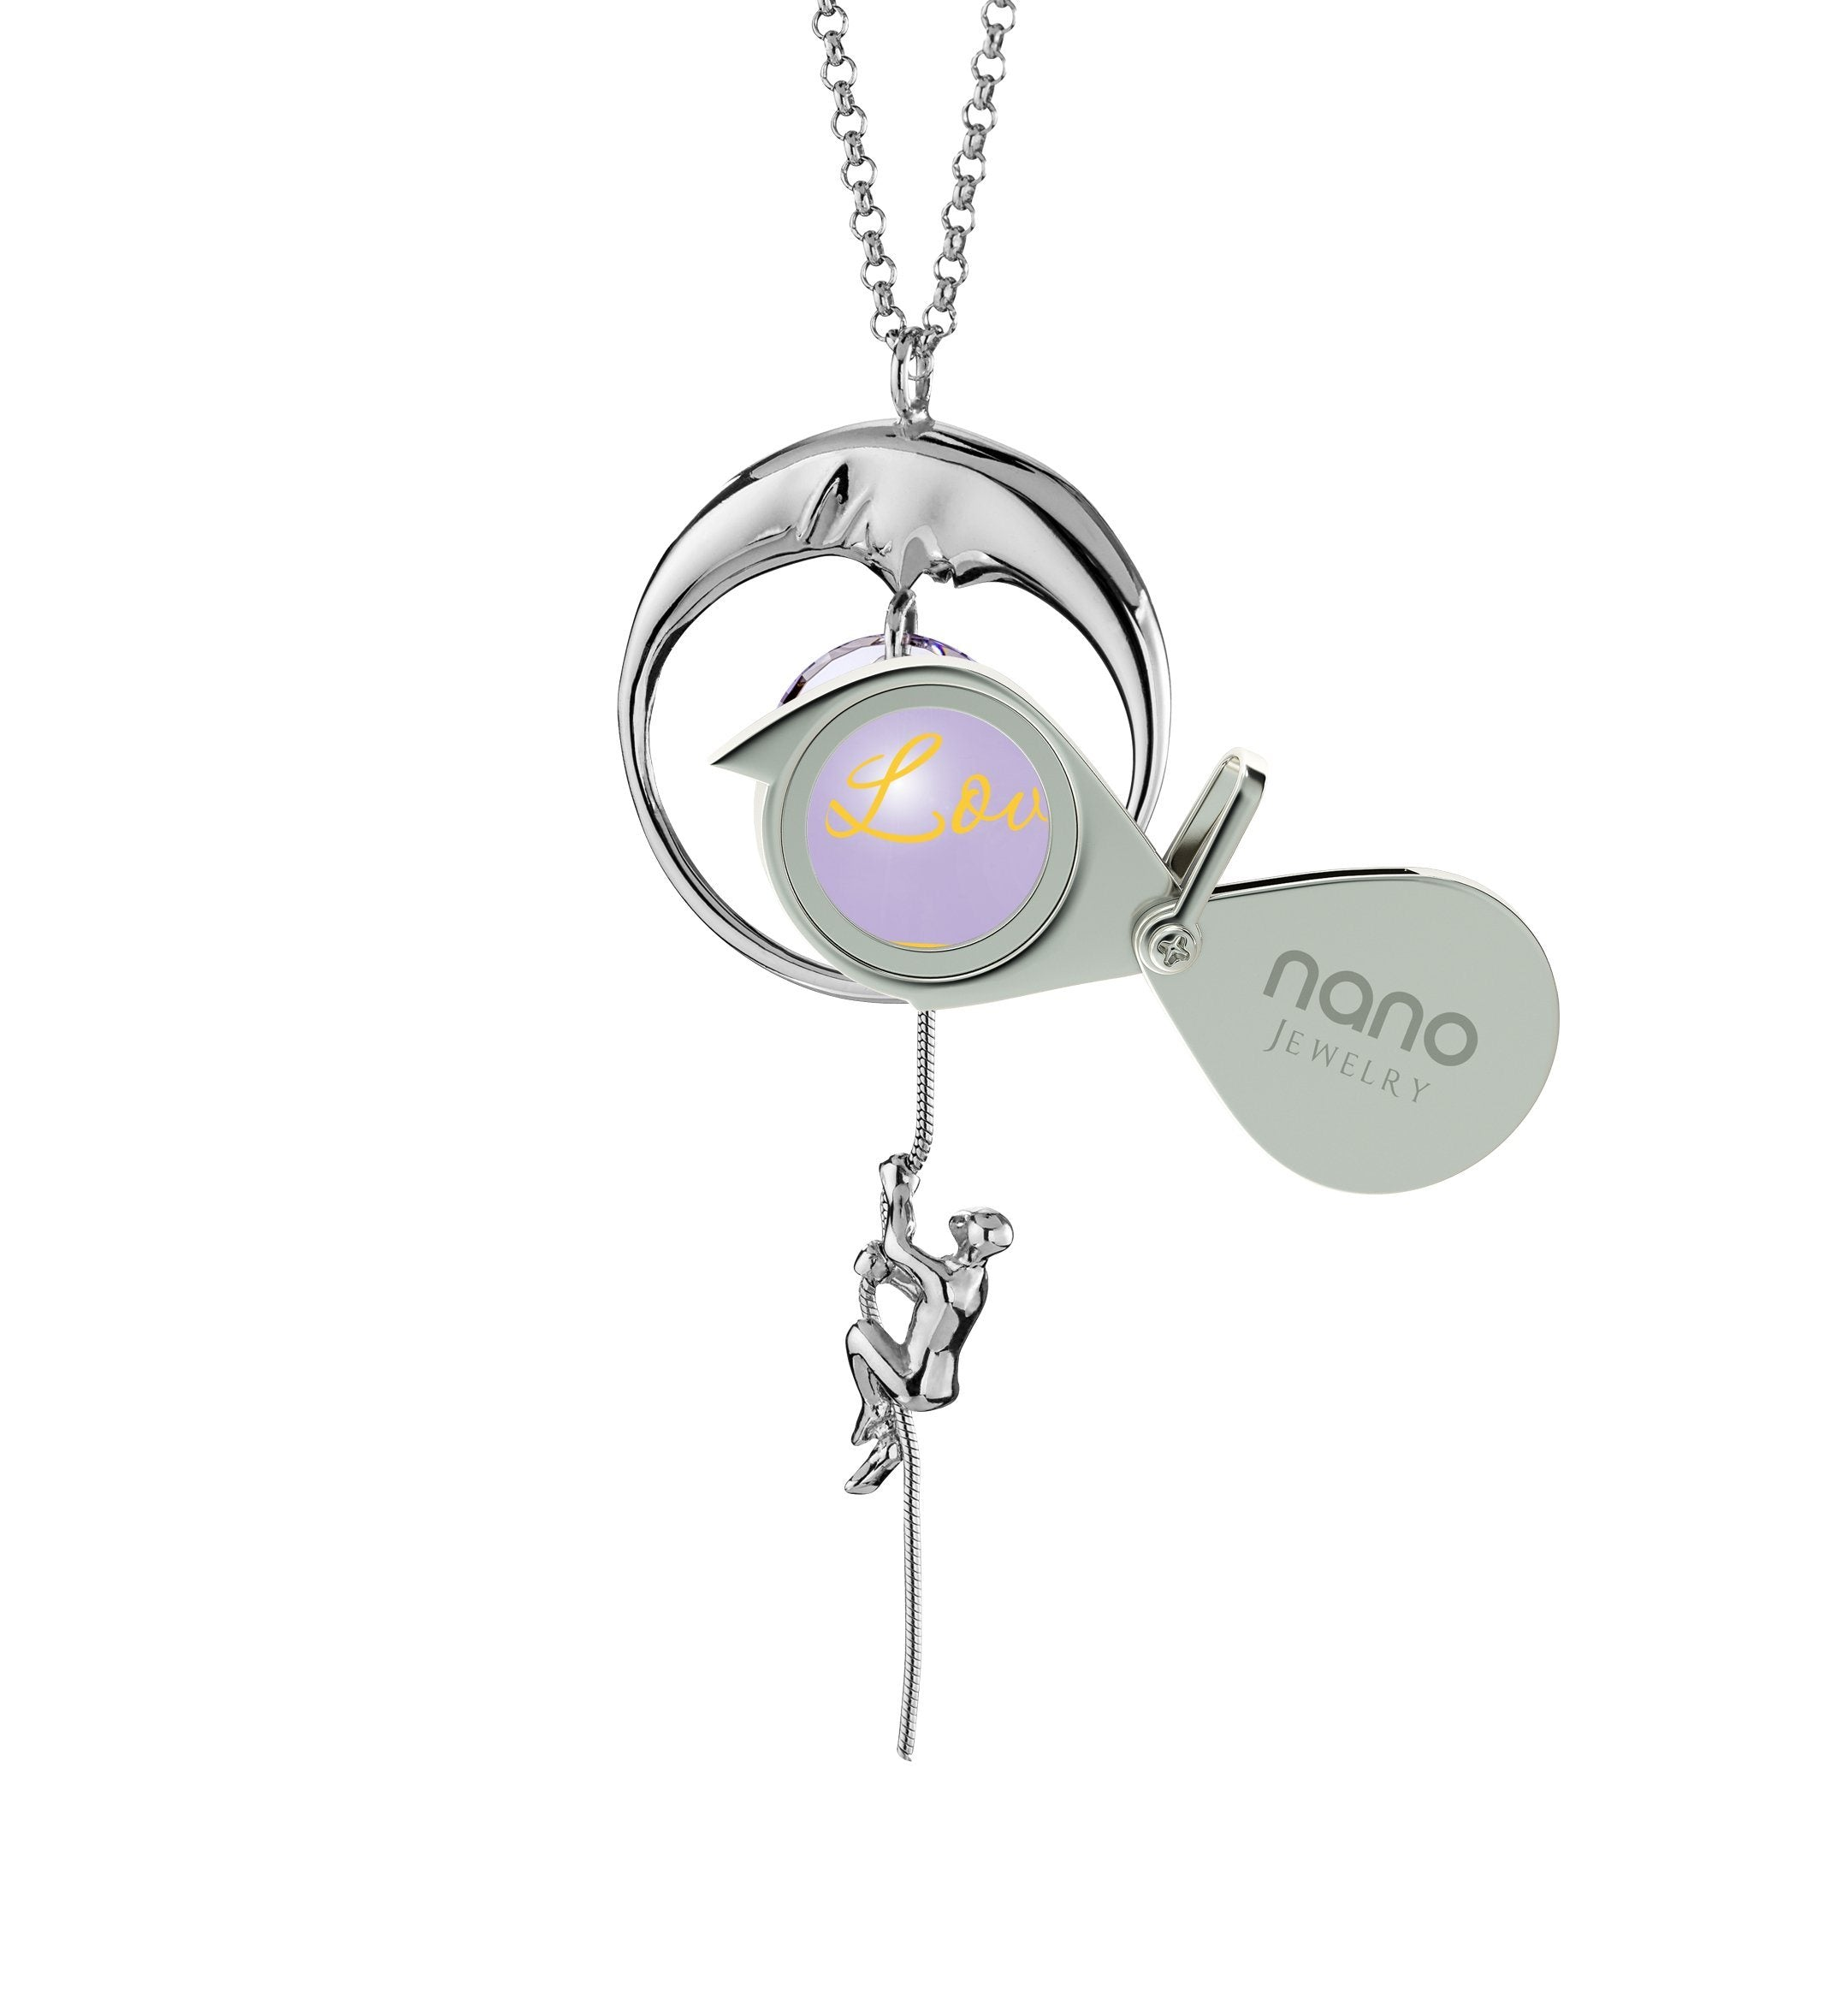 I Love You to the Moon and Back Jewelry: Women's Gifts for Christmas, Graduation Presents for Her, Solid Silver Necklace